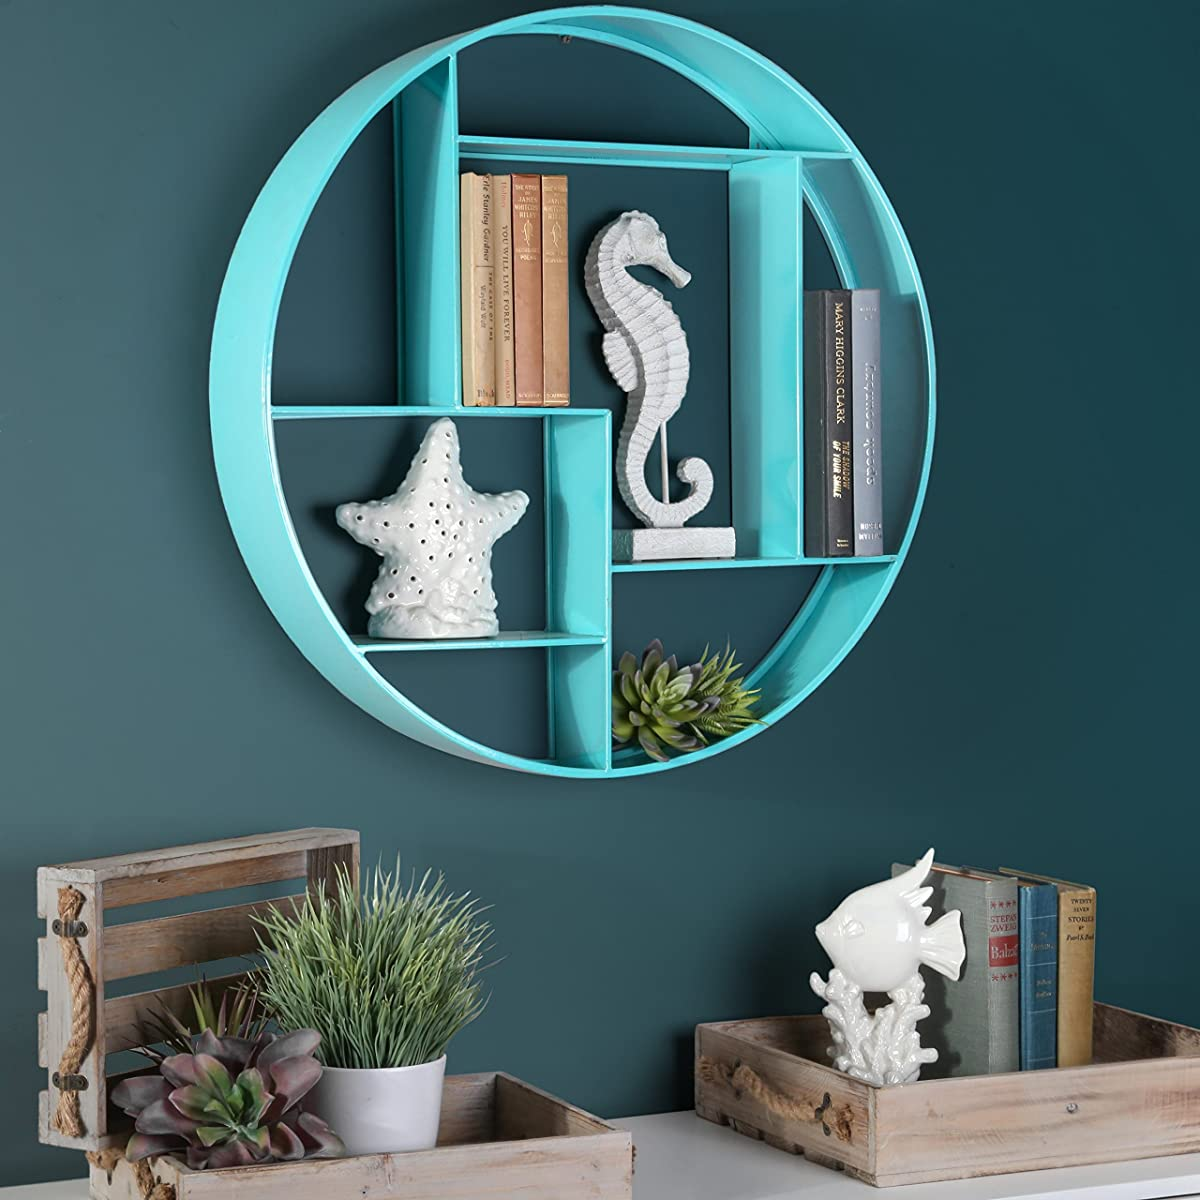 Urban Trends Metal Round Wall Shelf with 7 Slots and 2 Keyhole Hangers Coated Finish, Blue